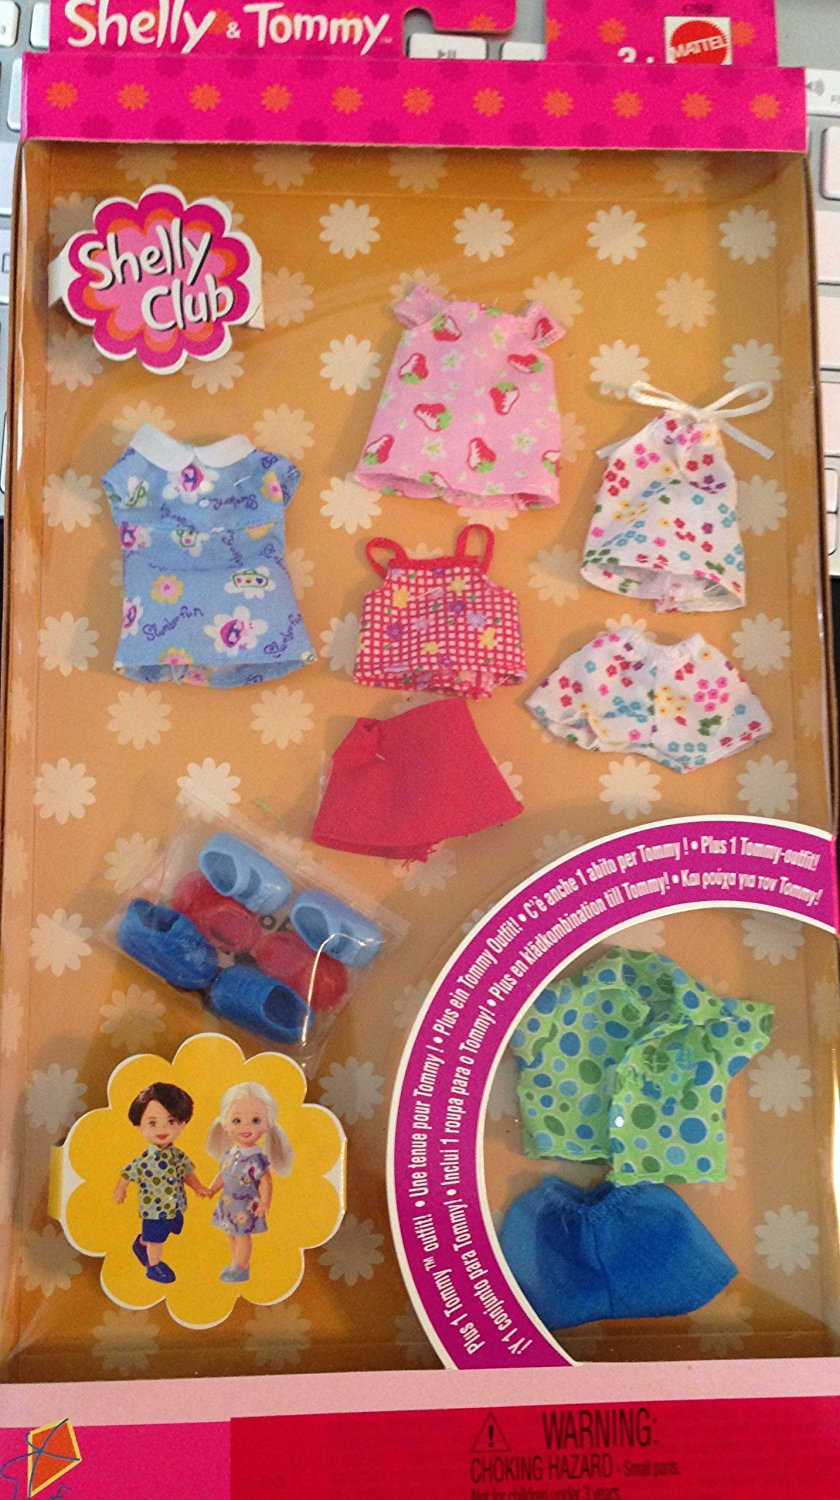 KELLY/Shelly CLUB FASHION Gift Set for KELLY Little Sister of BARBIE/Mattel/4 Outfits for KELLY & 1 Outfit for TOMMY/Sundress/Short Sets ASSORTMENT #1